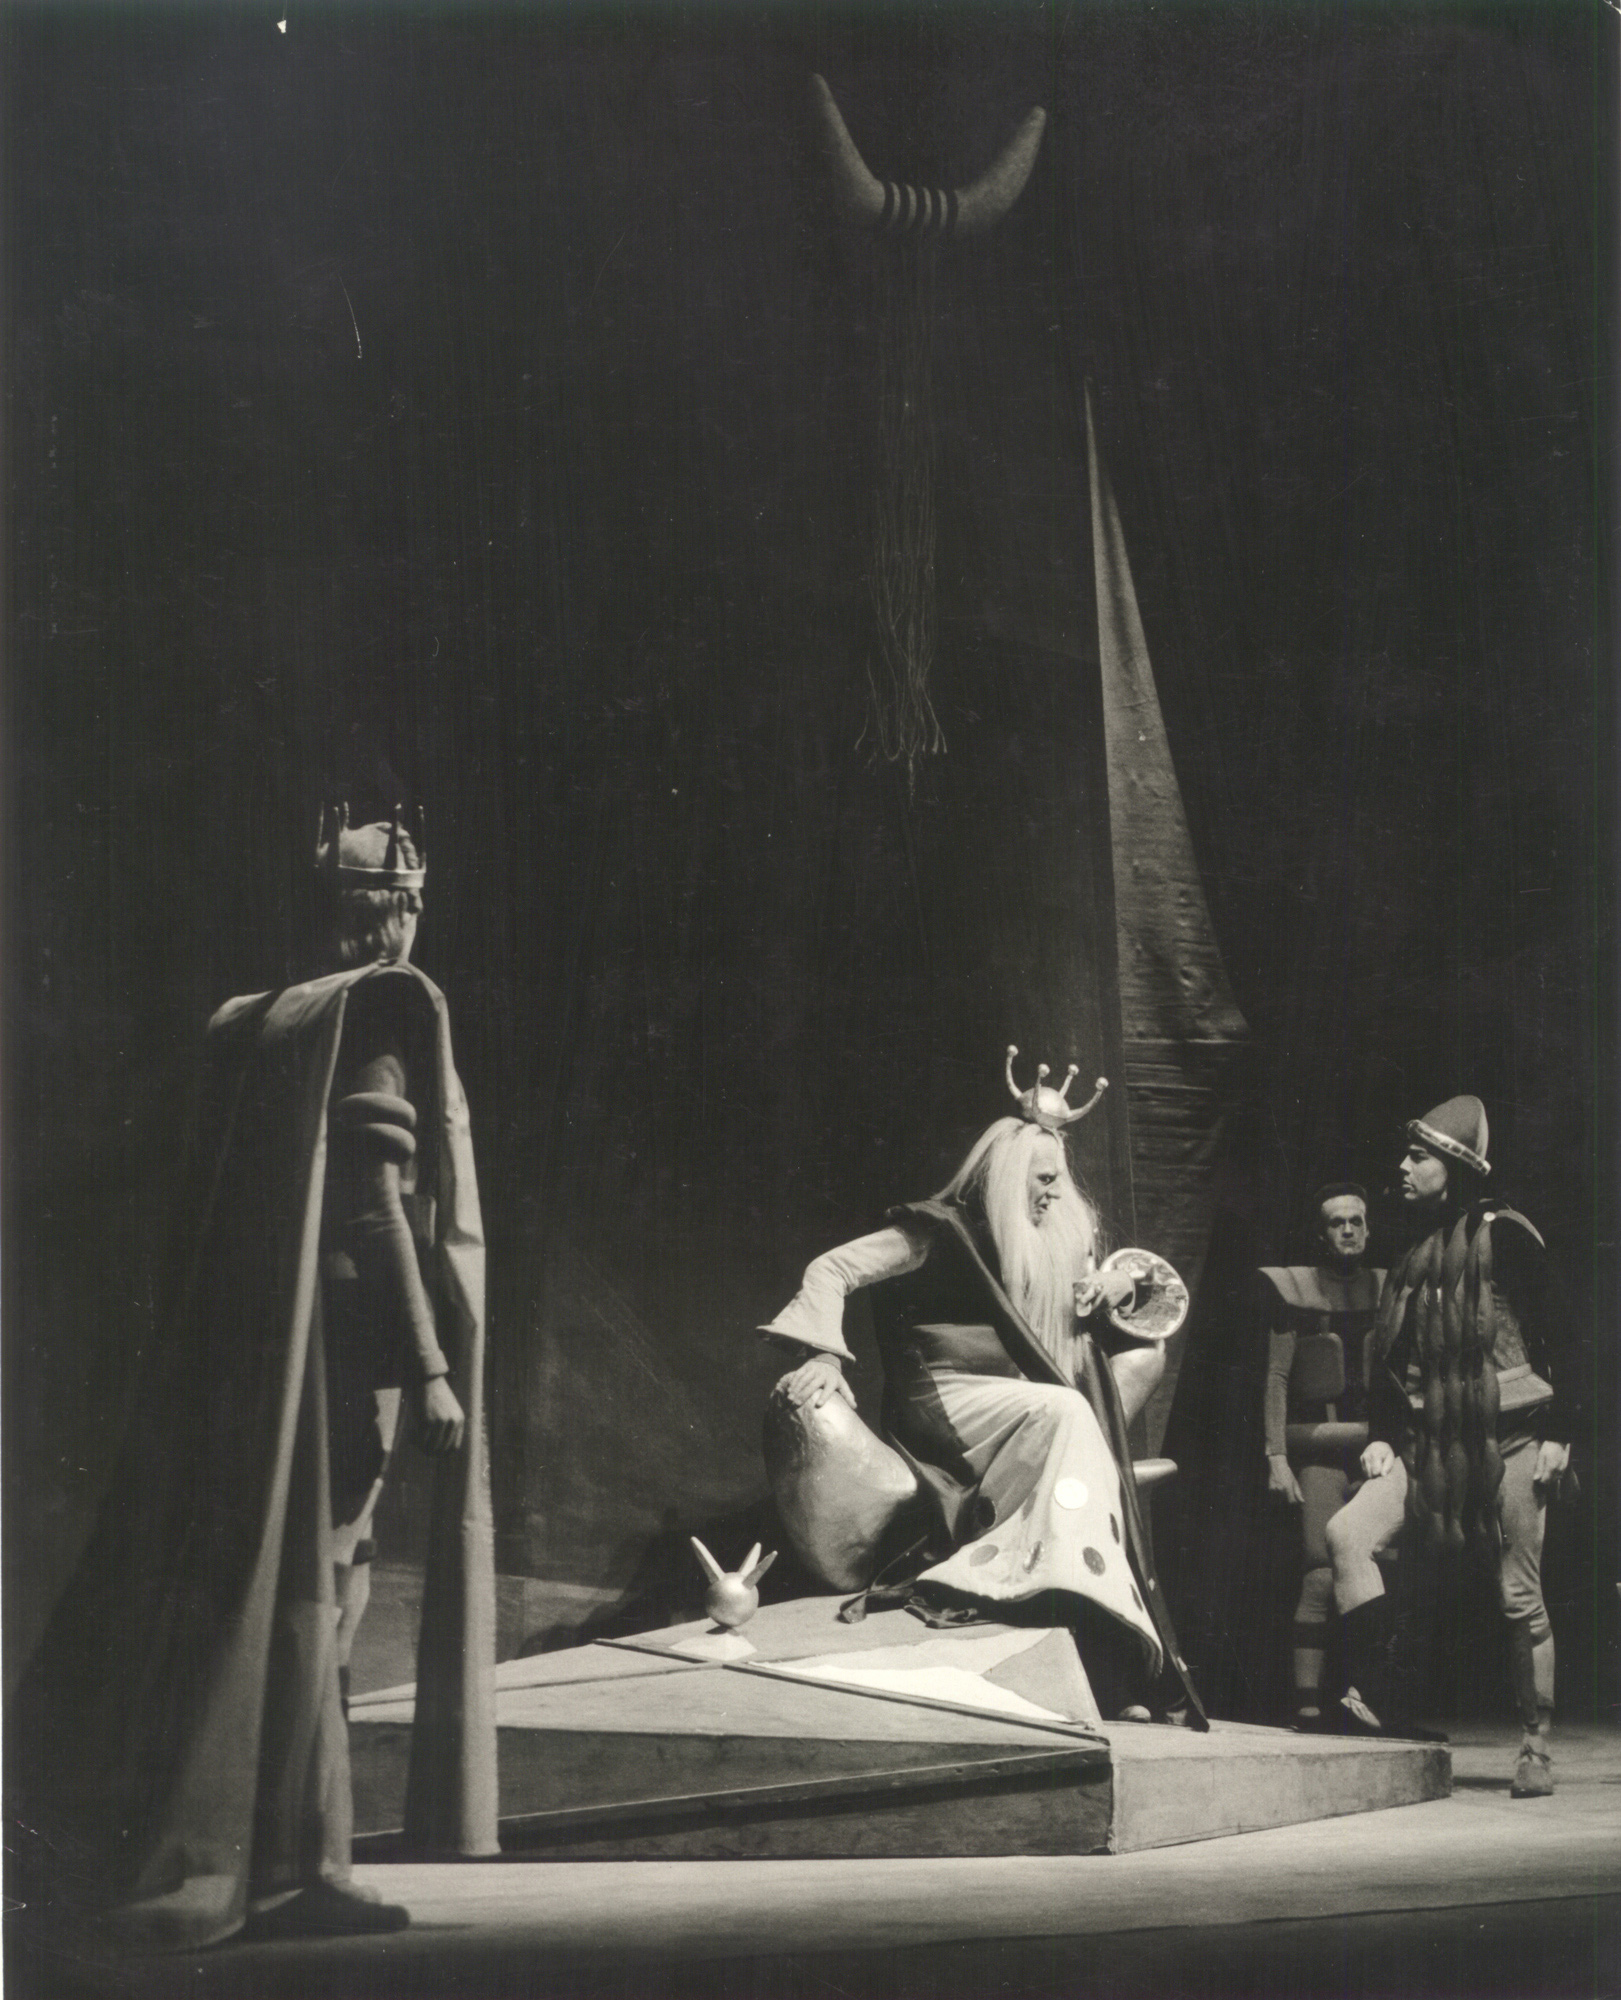 Photographs of John Gielgud as Lear, 1955